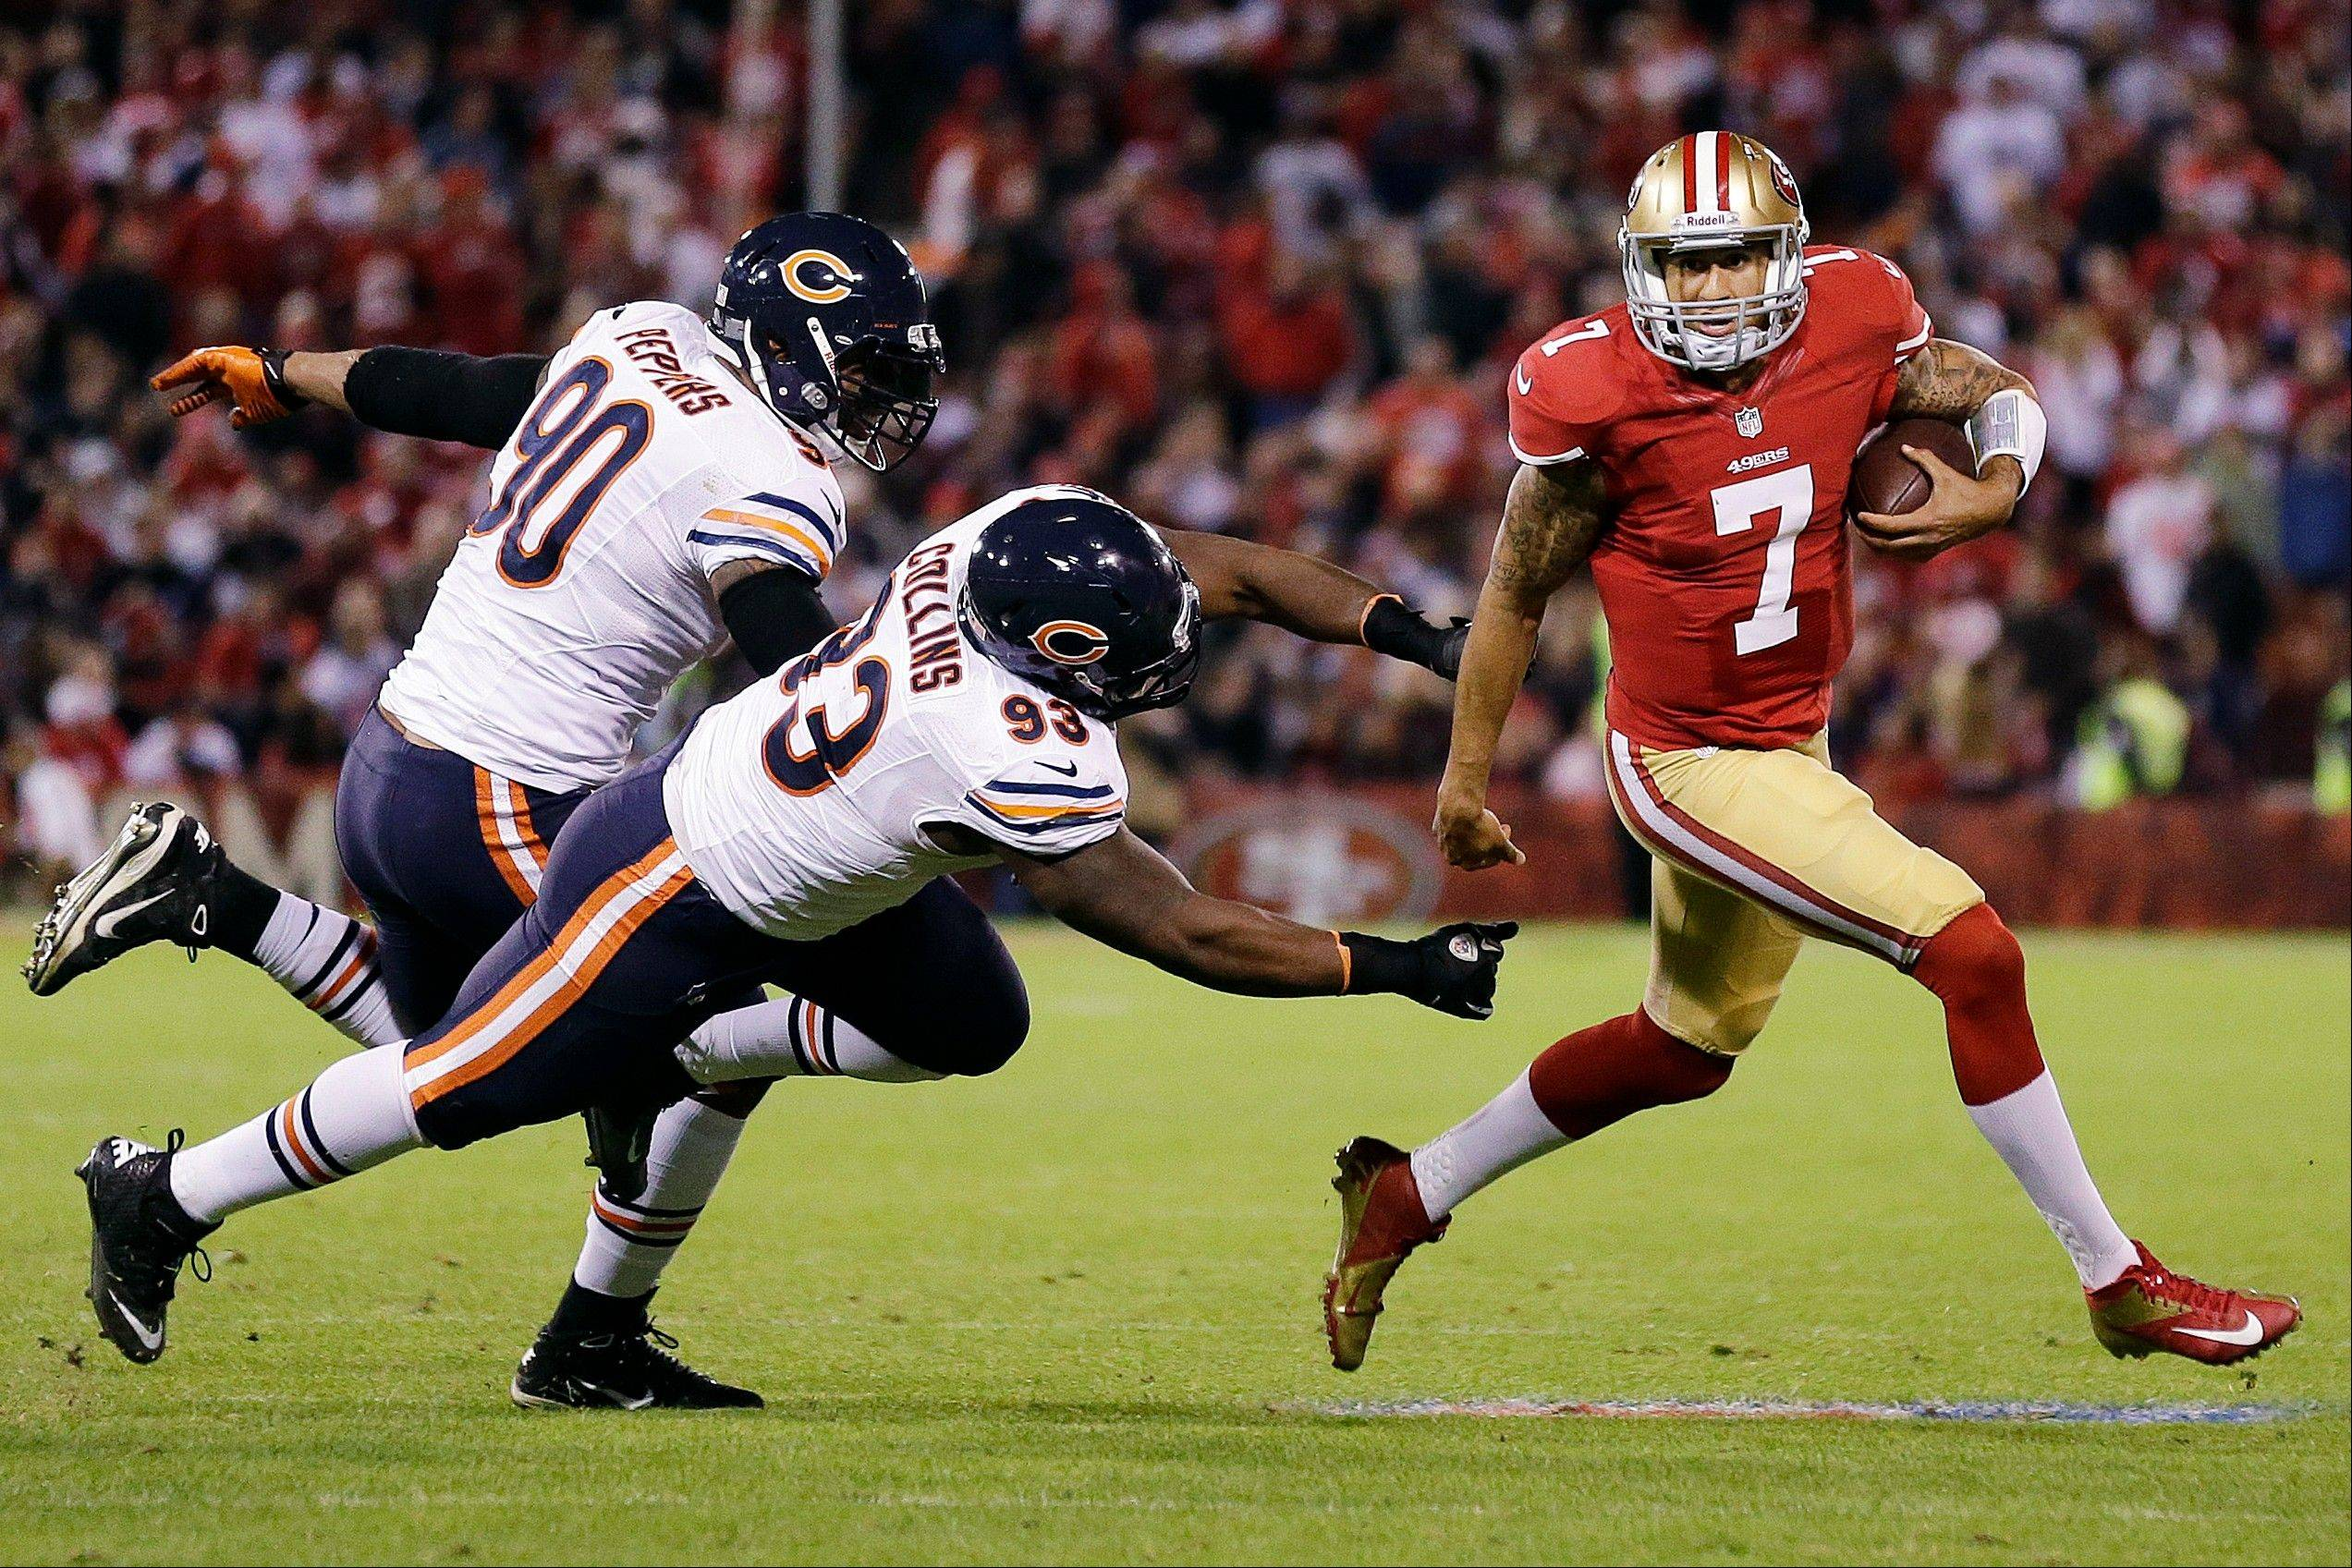 San Francisco 49ers quarterback Colin Kaepernick runs away from Chicago Bears defensive end Julius Peppers and defensive tackle Nate Collins during the third quarter.